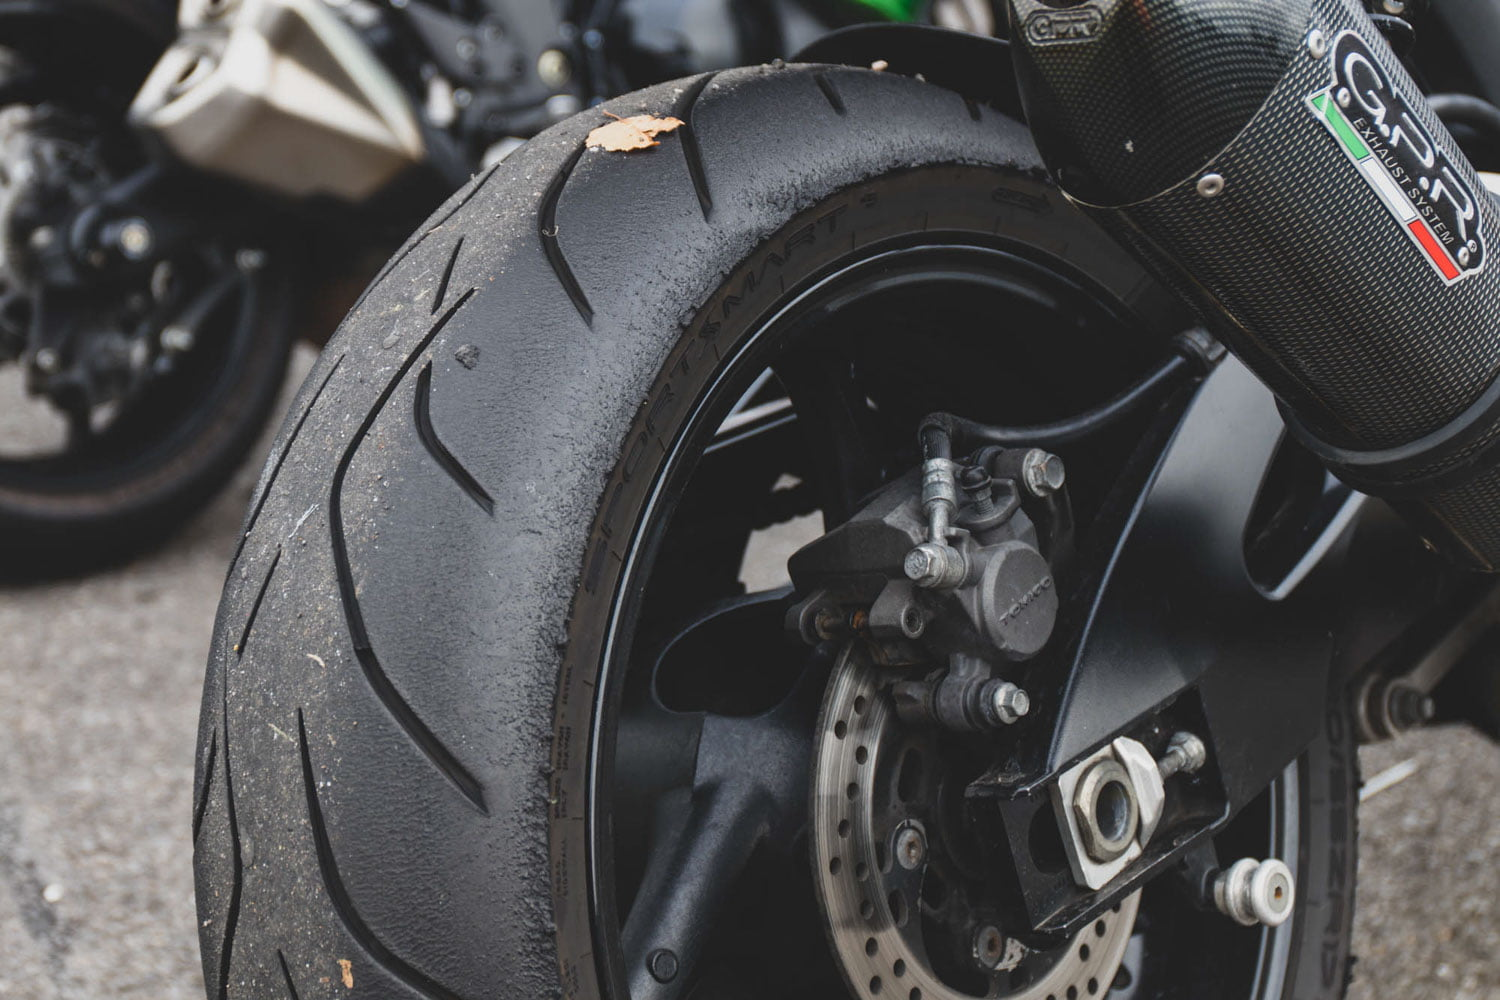 The best tyres for sports bikes and super nakeds? Dunlop Sportsmart Mk3